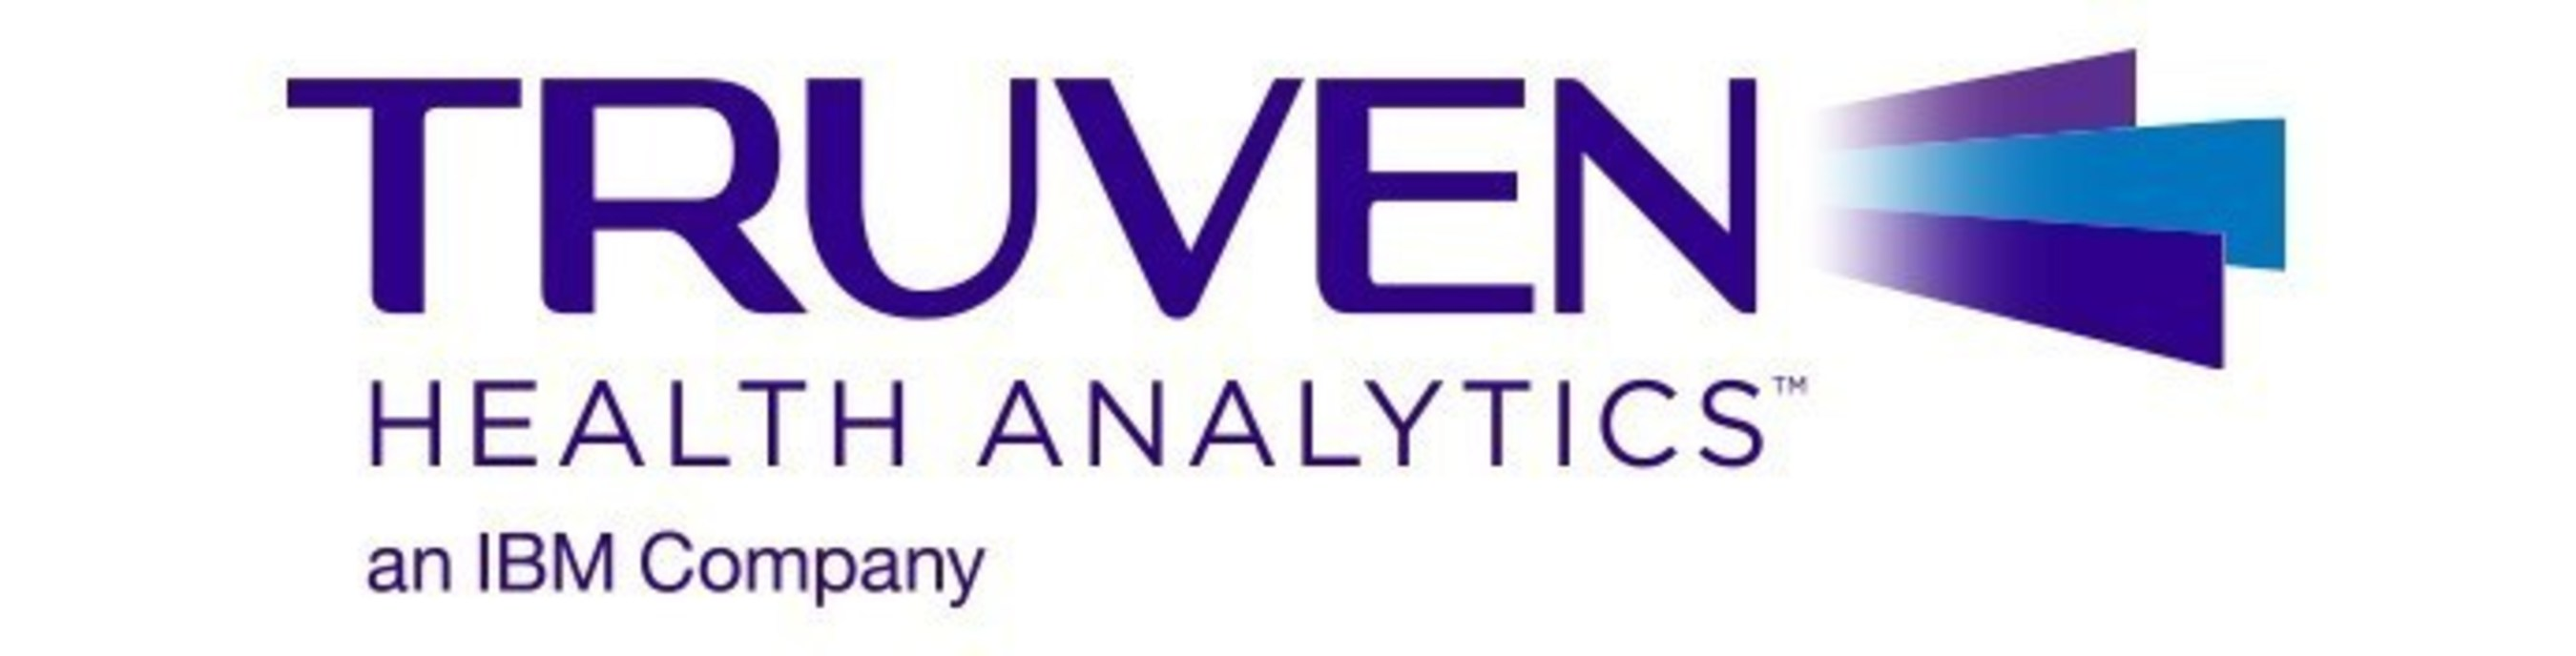 Truven_Health_Analytics_Logo